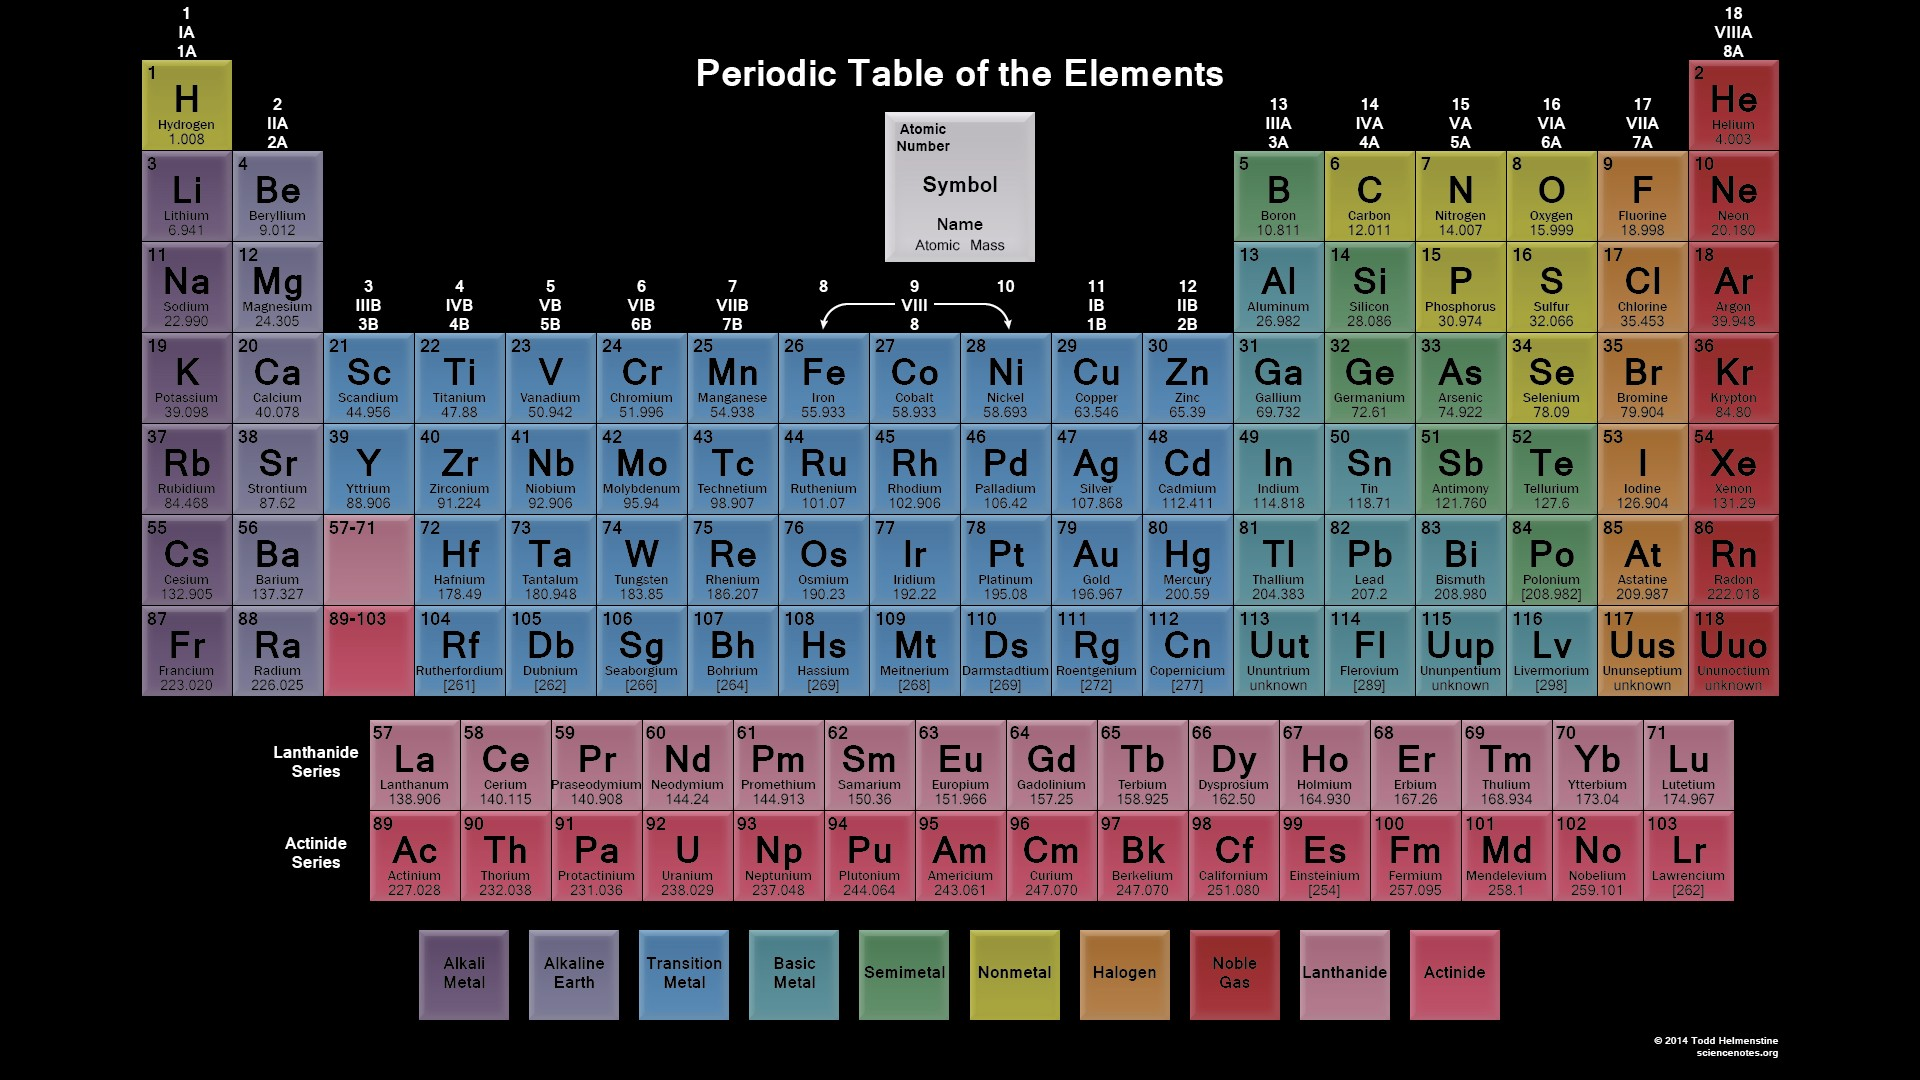 Periodic table wallpaper download free beautiful full hd 1920x1080 periodic table wallpaper glass table gamestrikefo Image collections